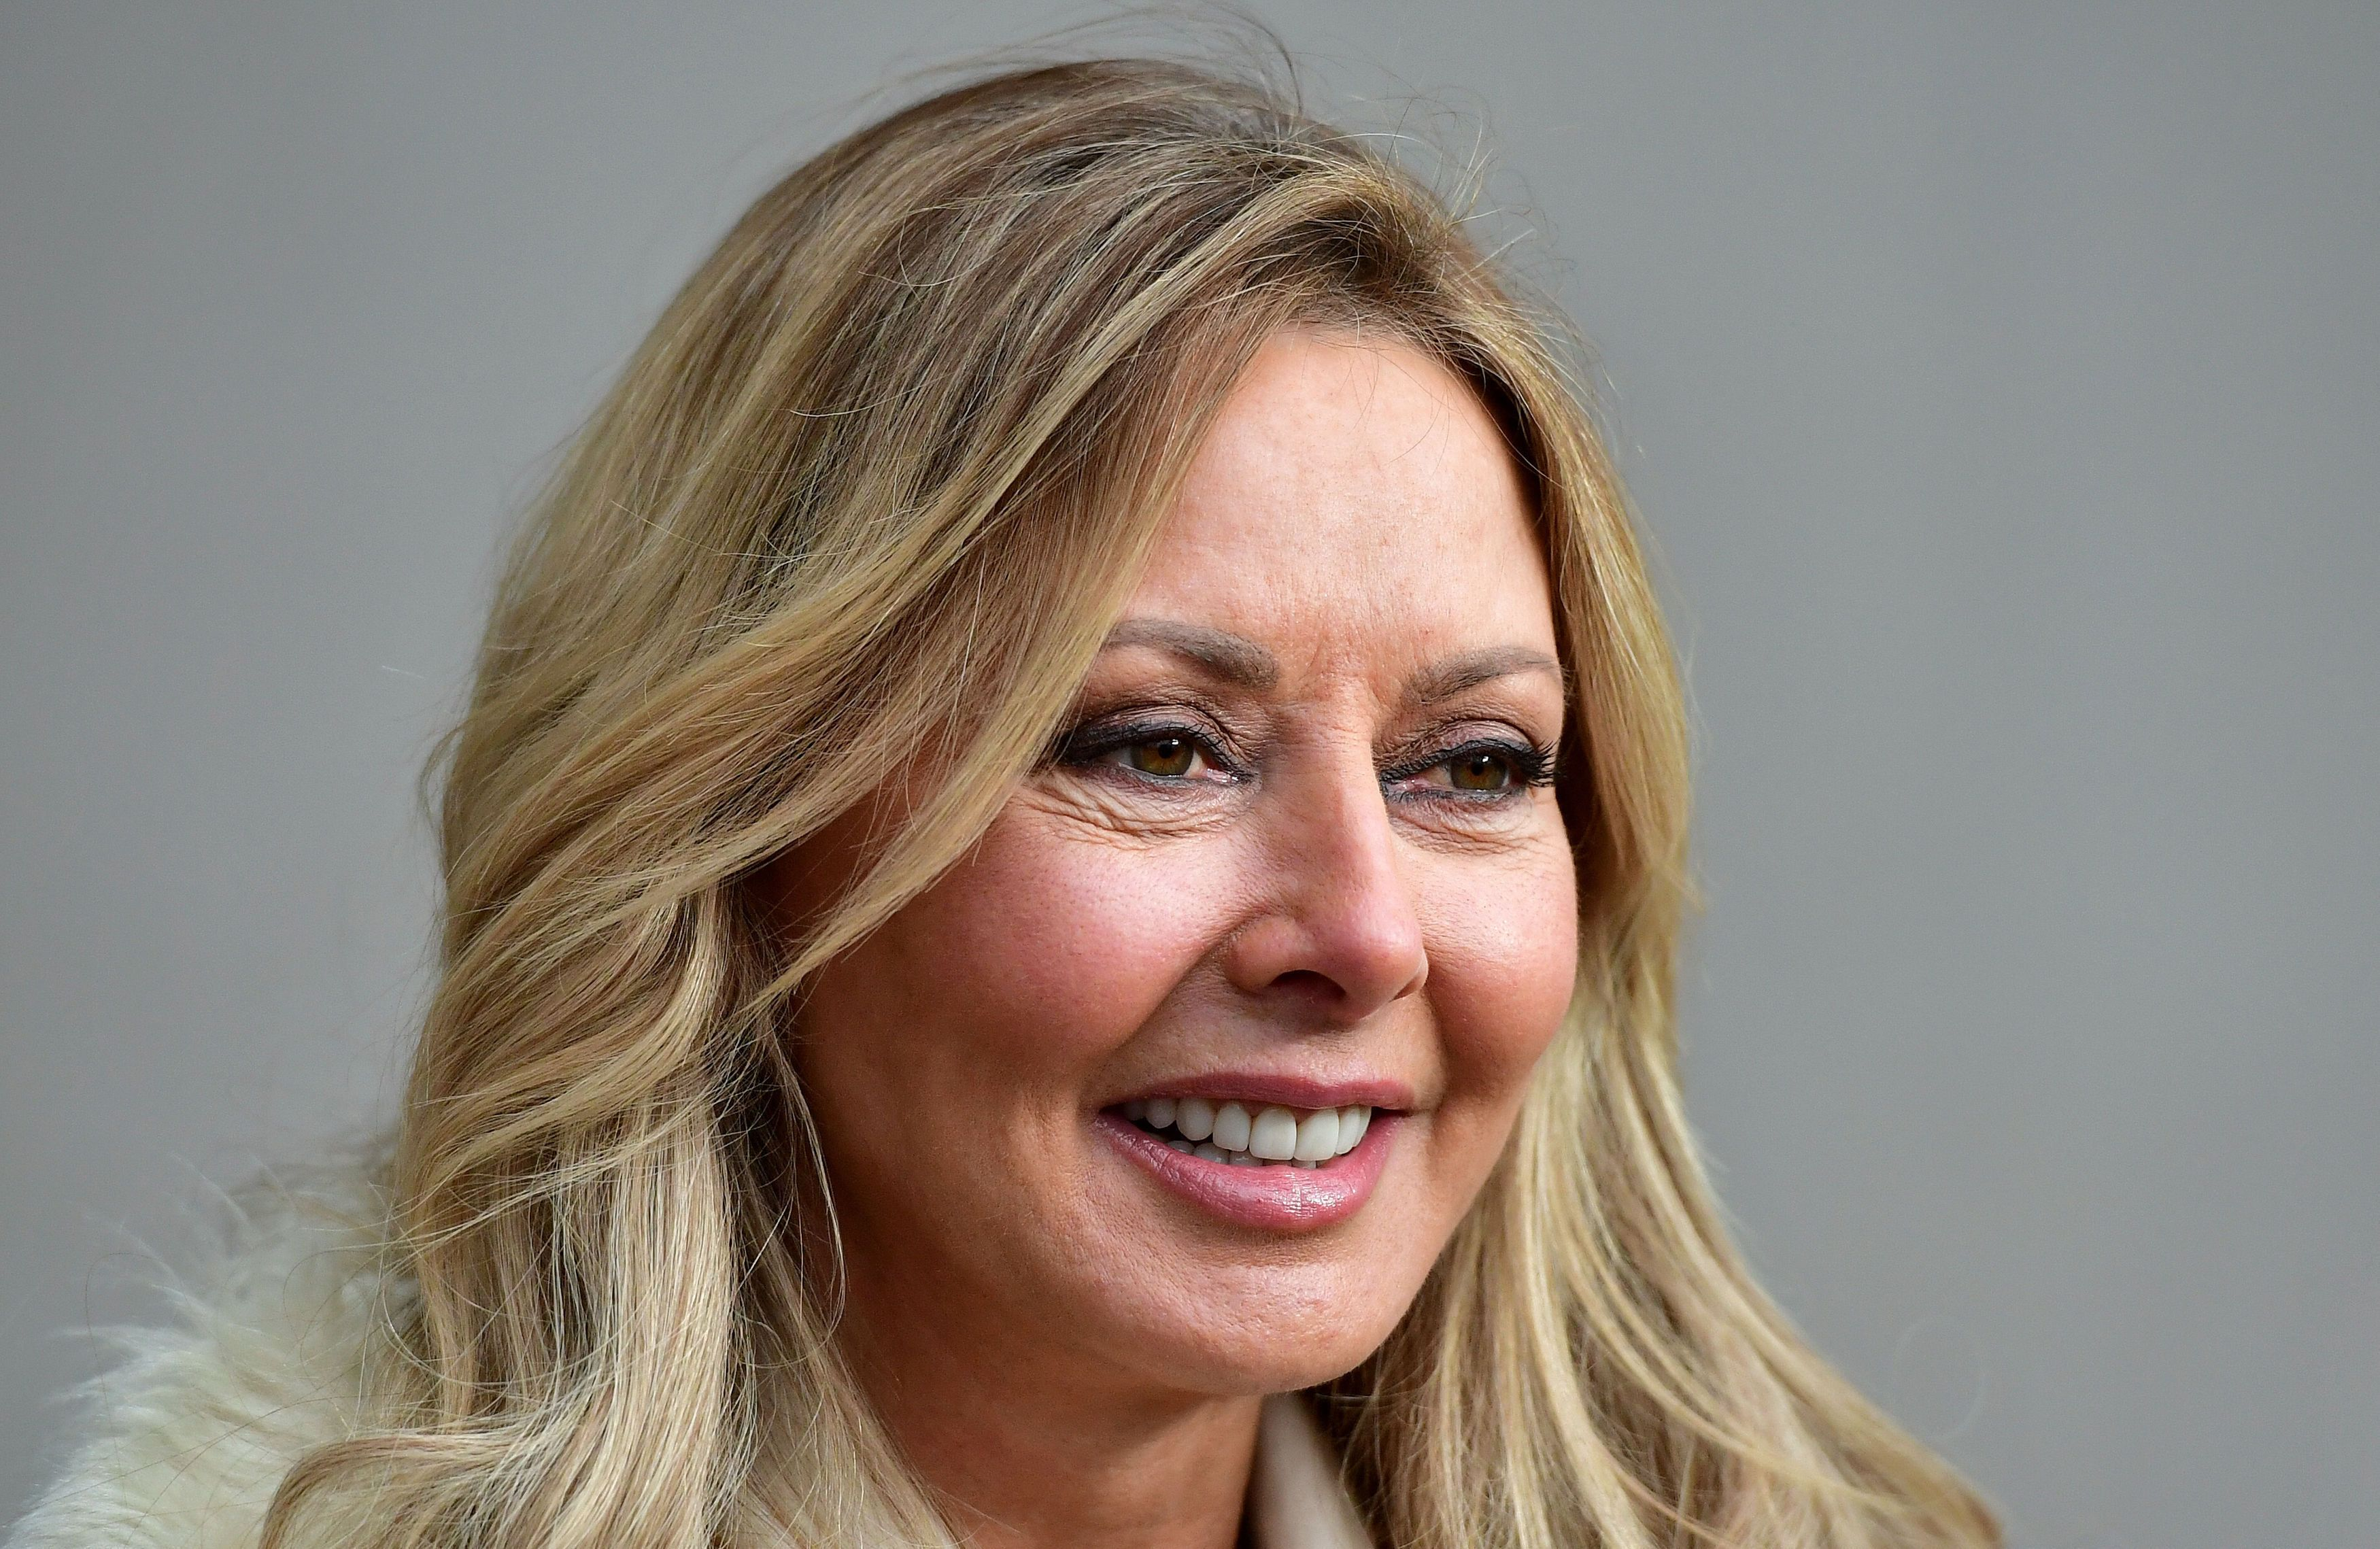 Carol Vorderman Hits Back At 'Sad' Criticism Of 'Puffy' Appearance On 'The One